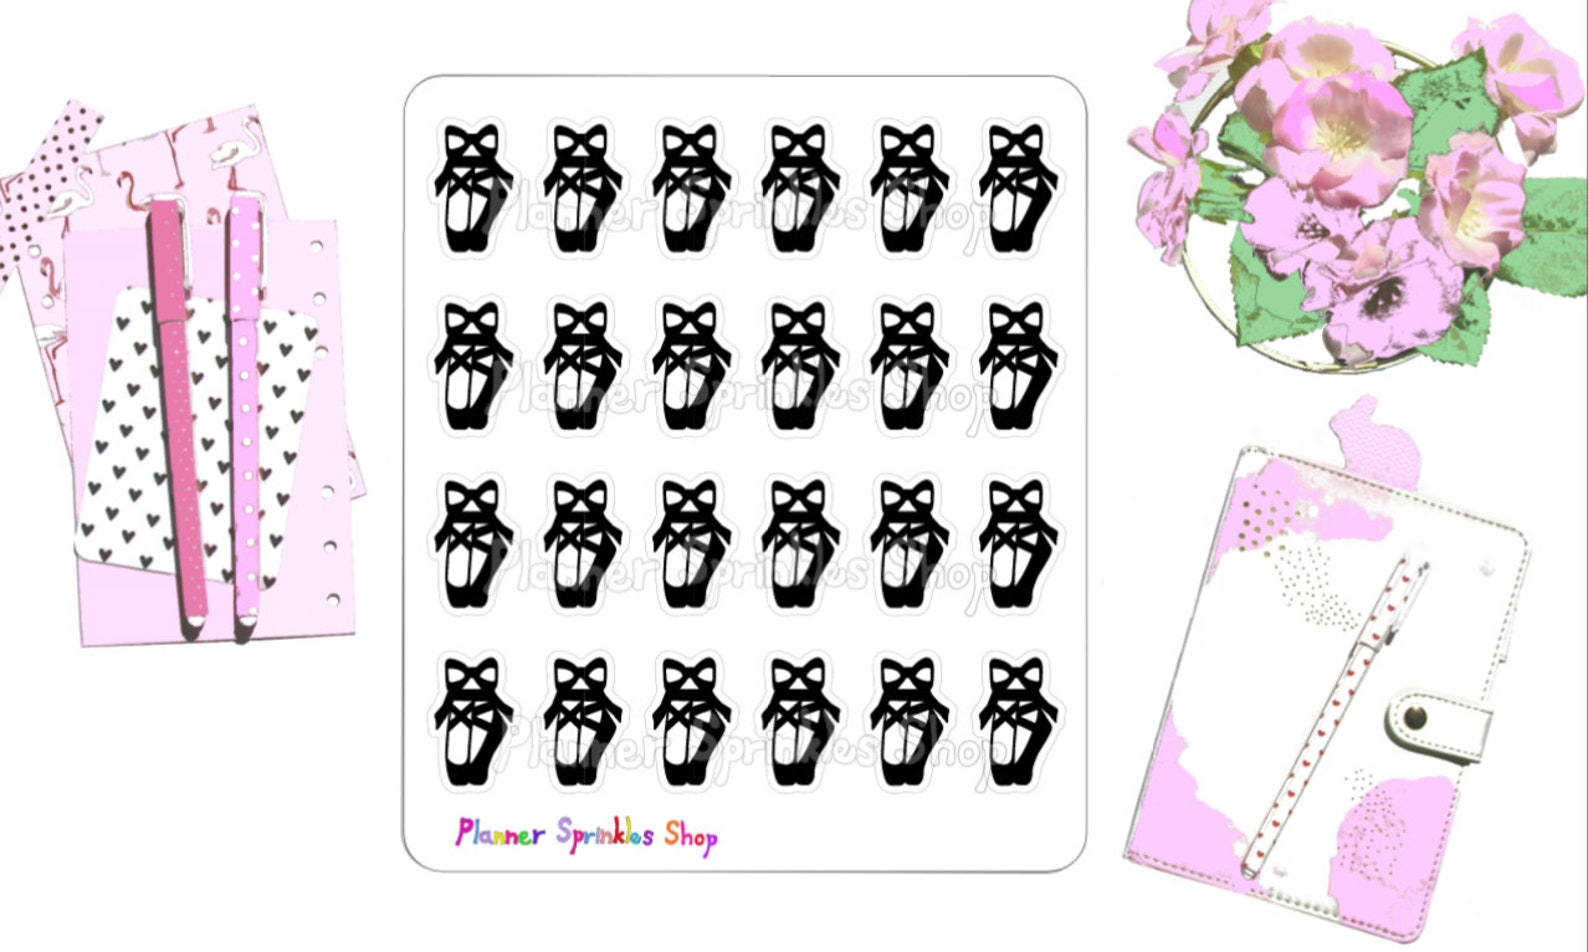 ballet shoes planner stickers / dance stickers / red pink shoes / hand drawn planner stickers